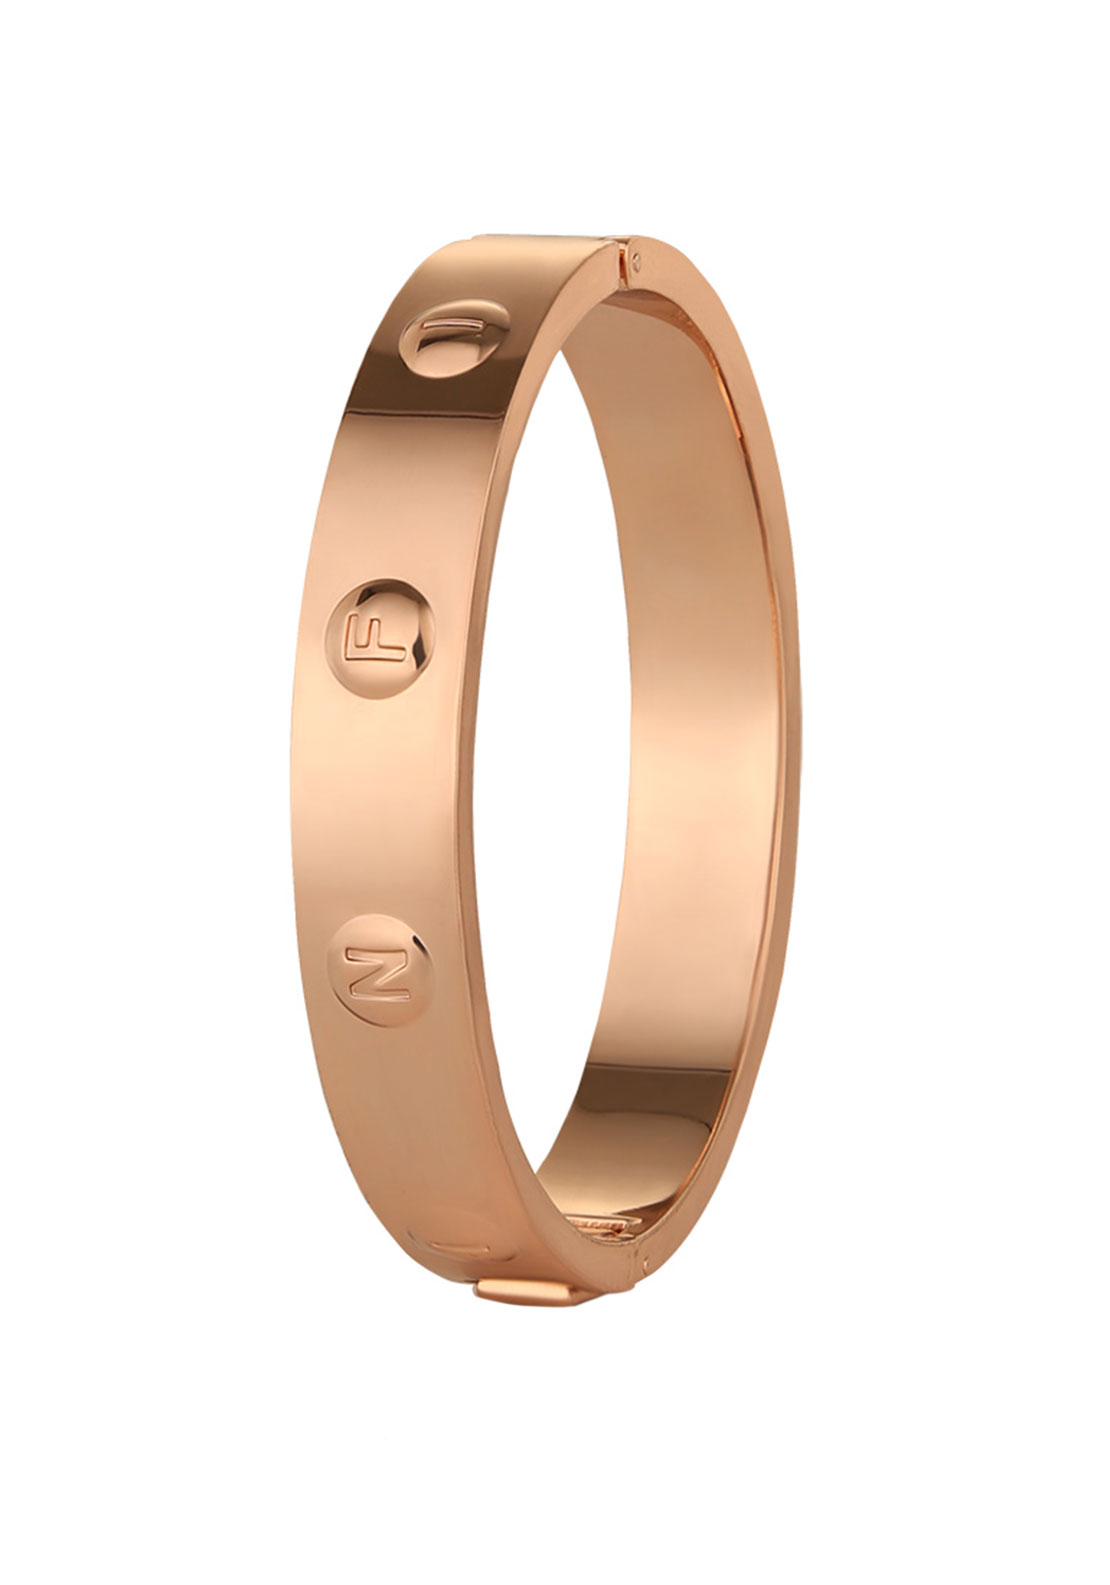 Newbridge Silverware Infinity Bangle, Rose Gold Plated